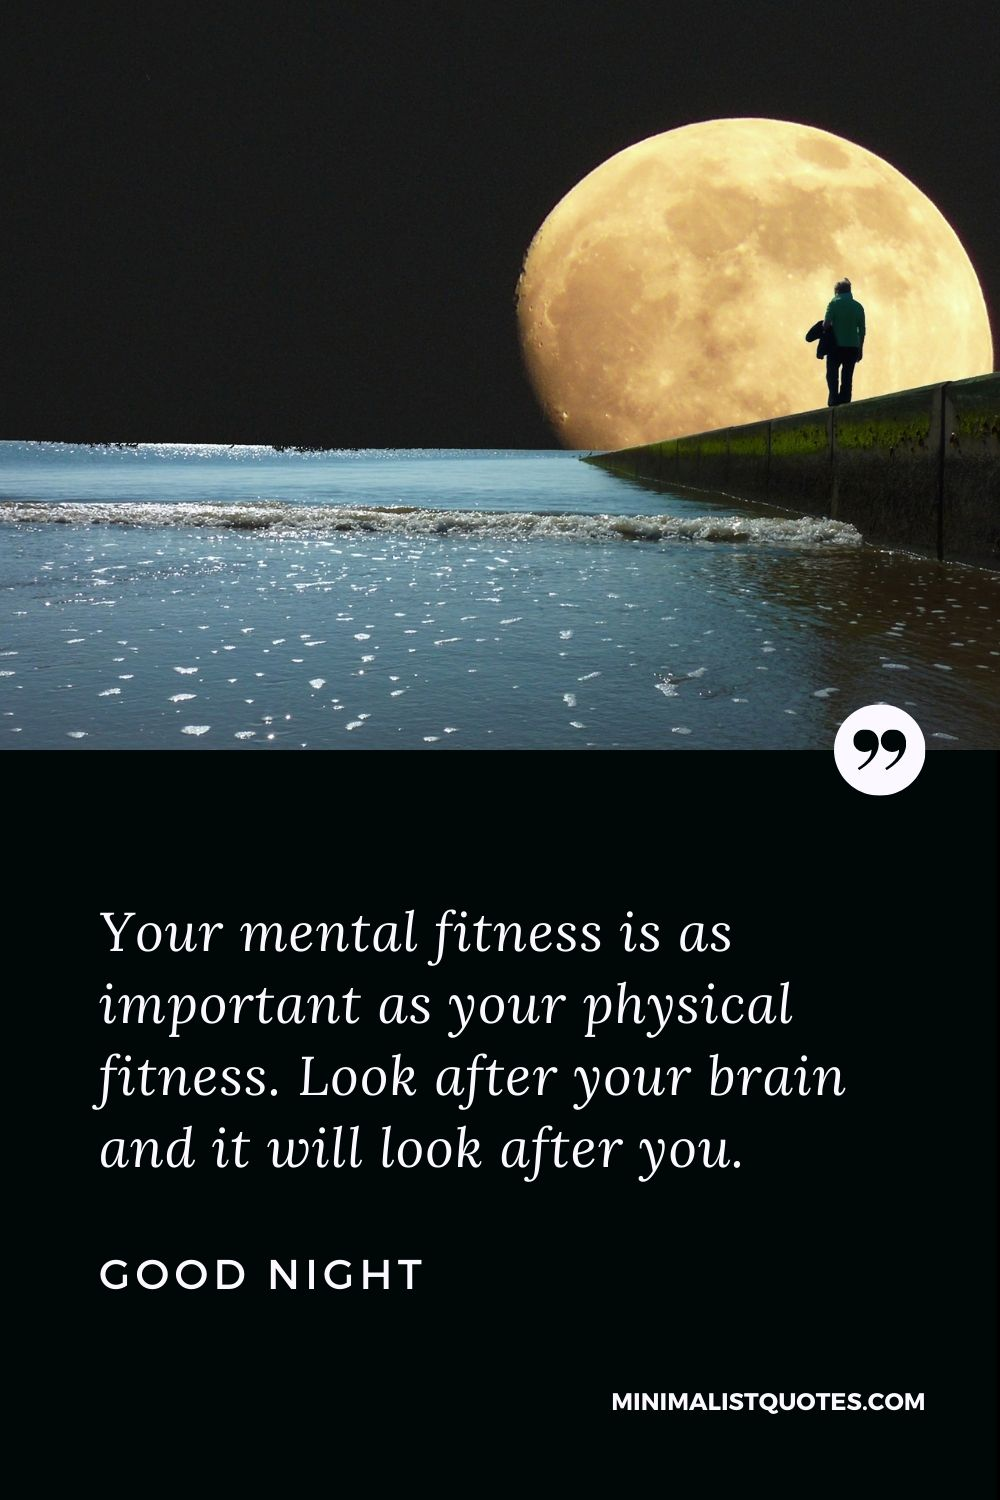 Good Night Wishes - Your mental fitness is as important as your physical fitness. Look after your brain and it will look after you.